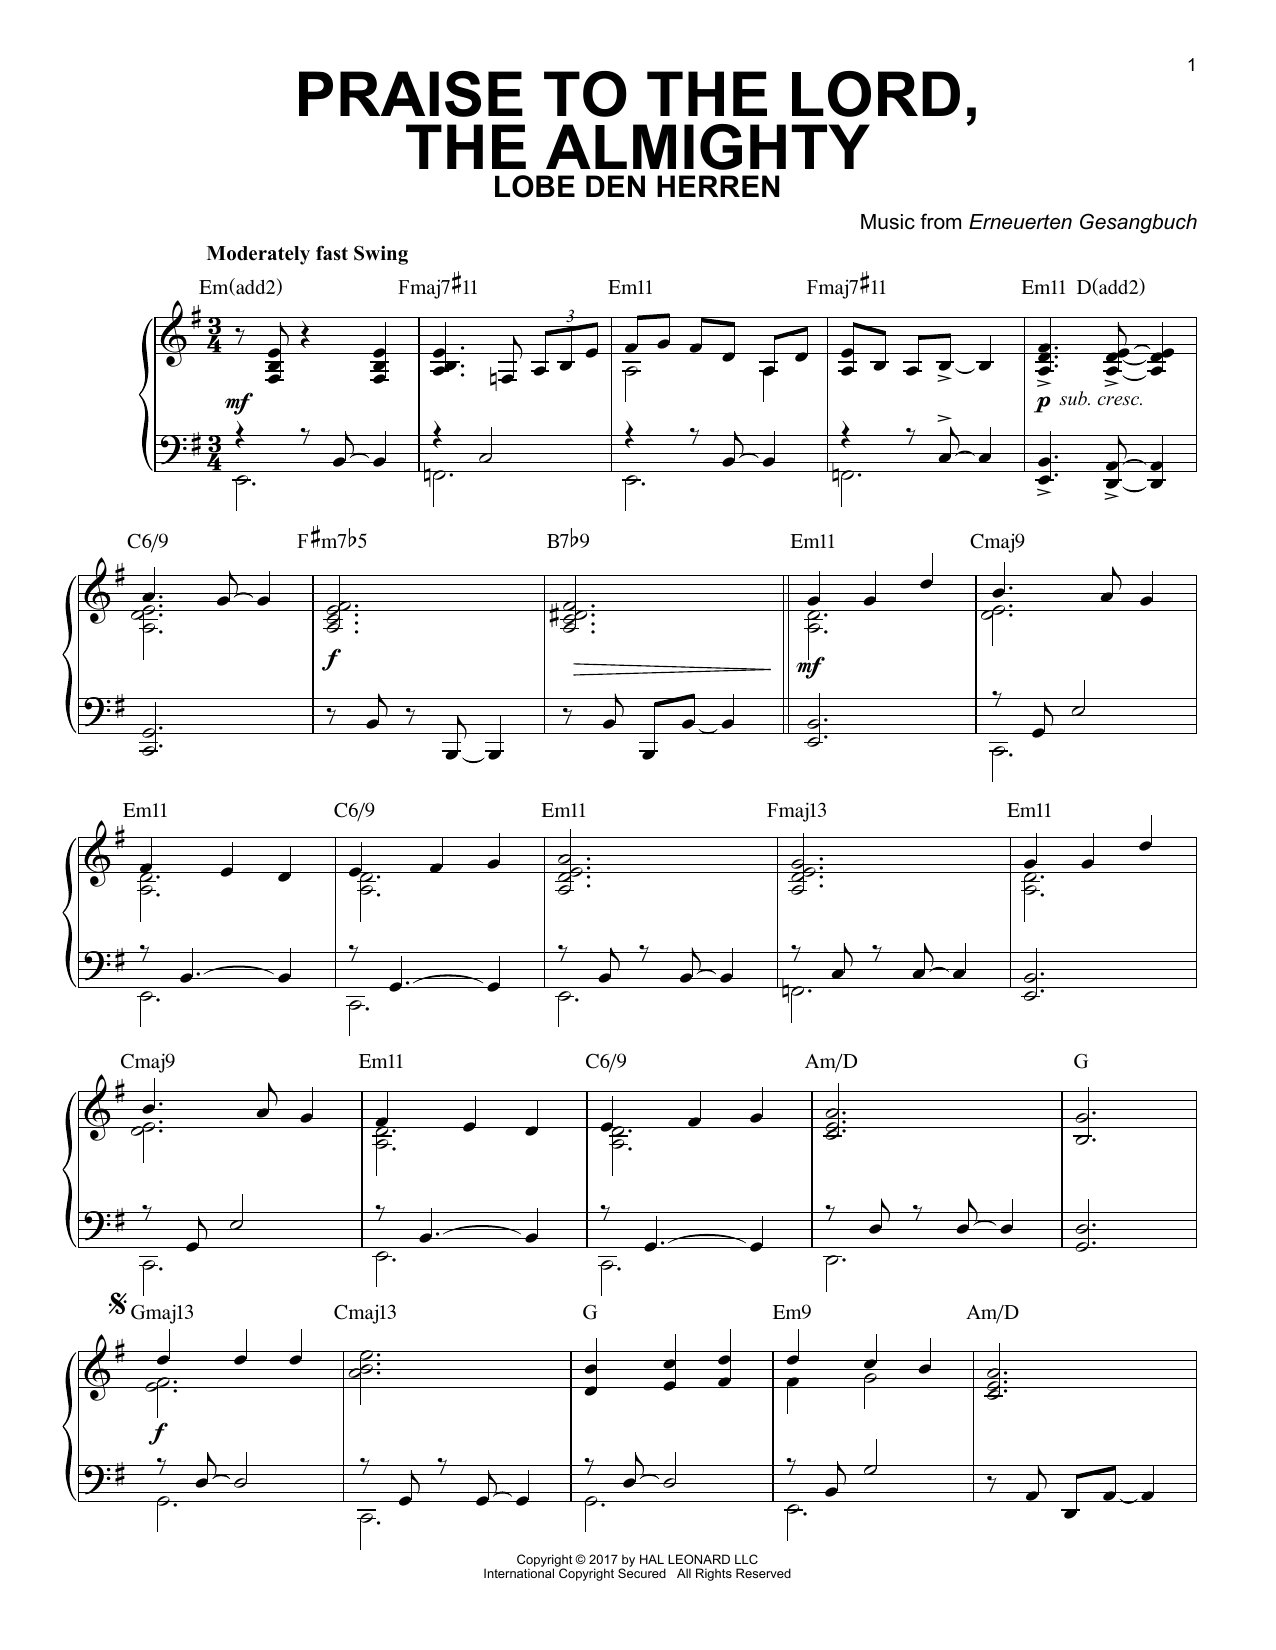 Erneuerten Gesangbuch Praise To The Lord, The Almighty [Jazz version] sheet music notes and chords. Download Printable PDF.